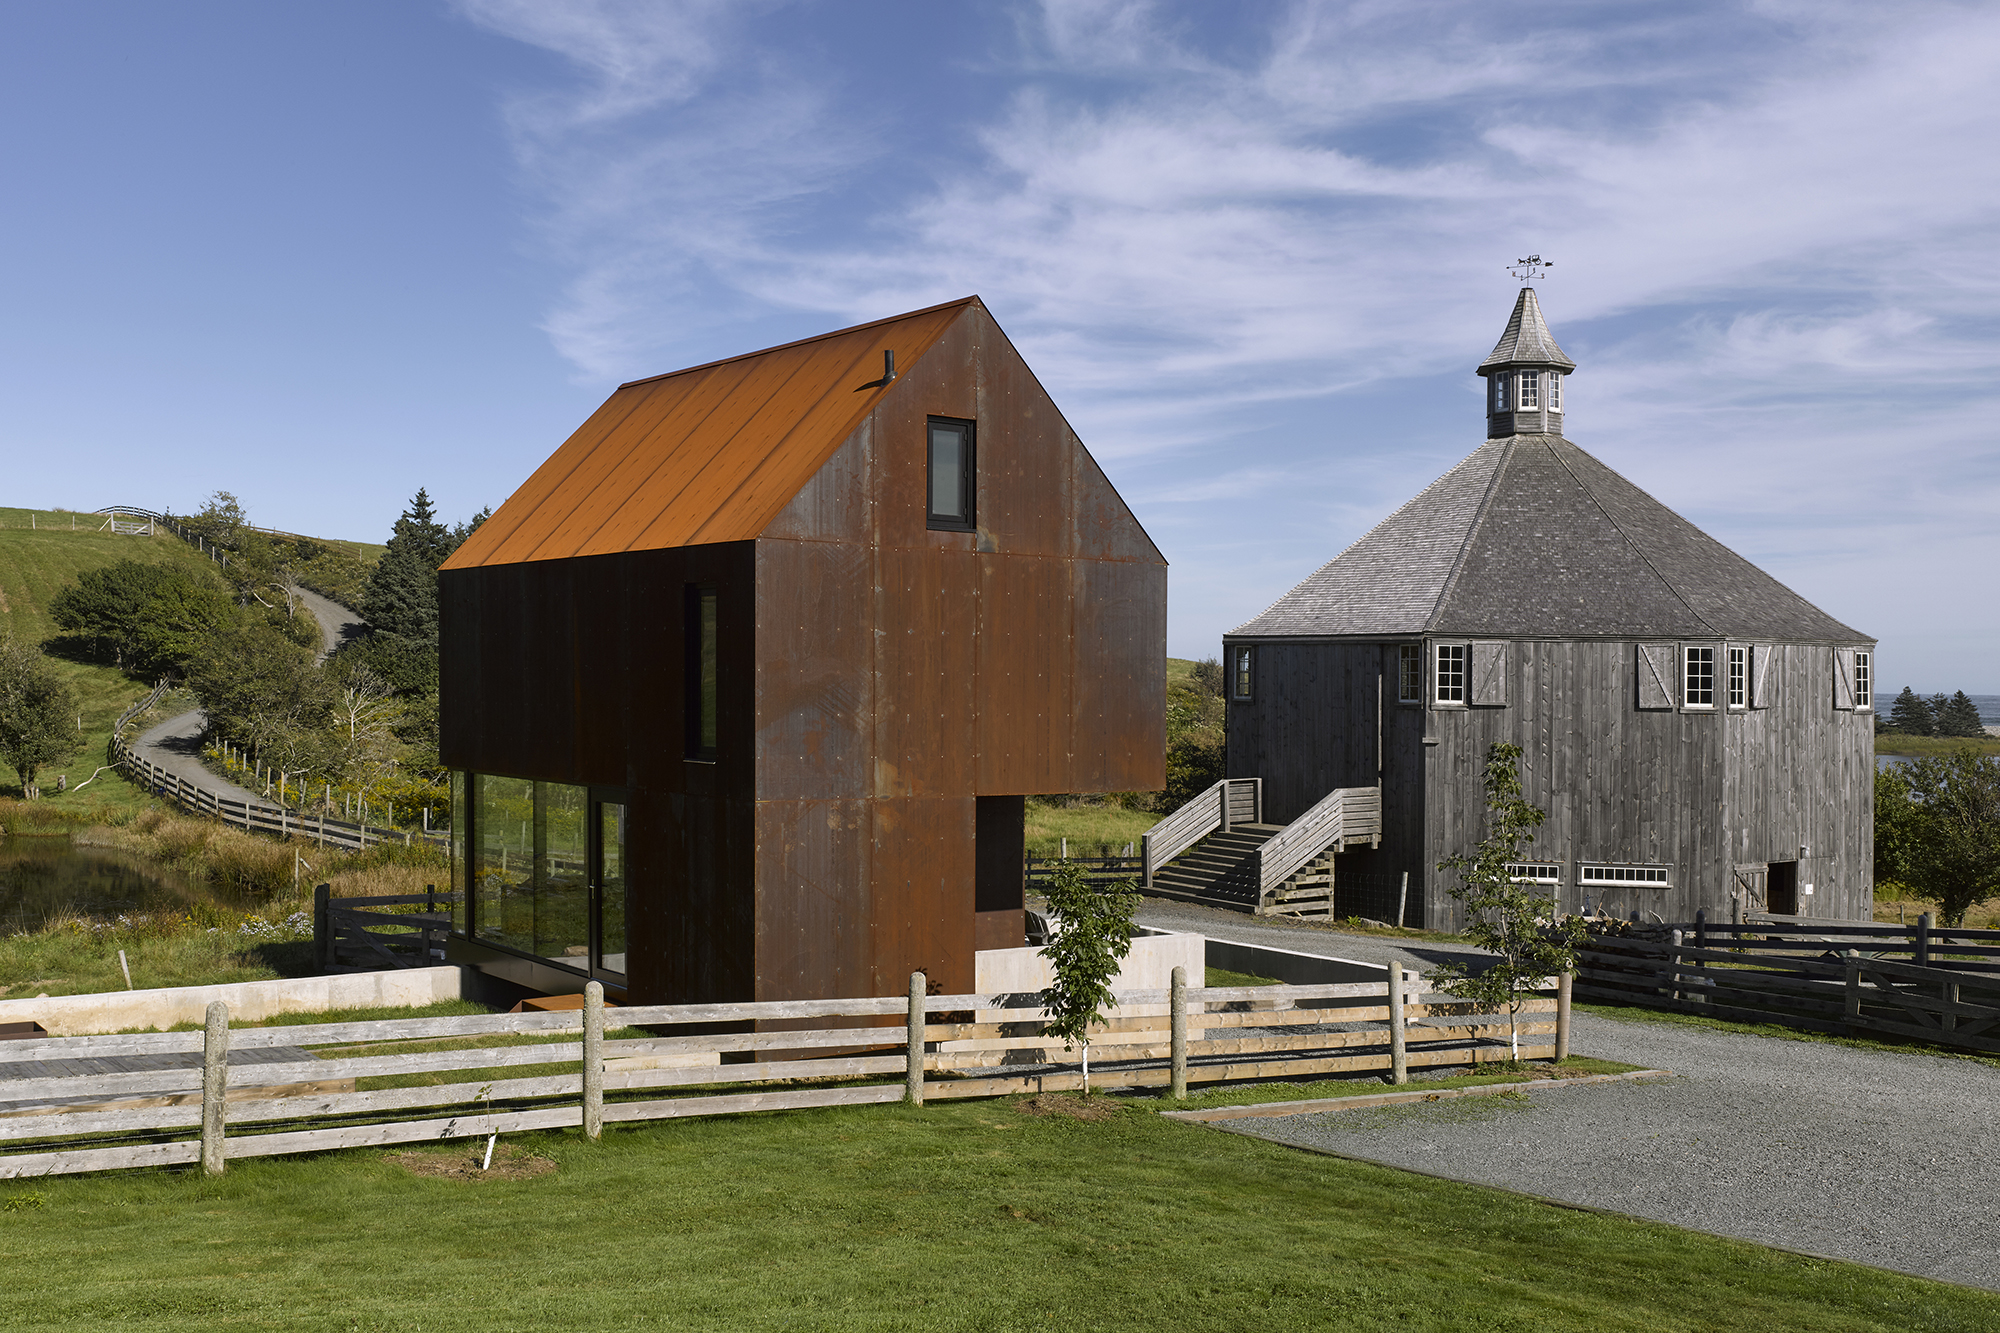 Enough house architect magazine mackay lyons for Small house designs nova scotia